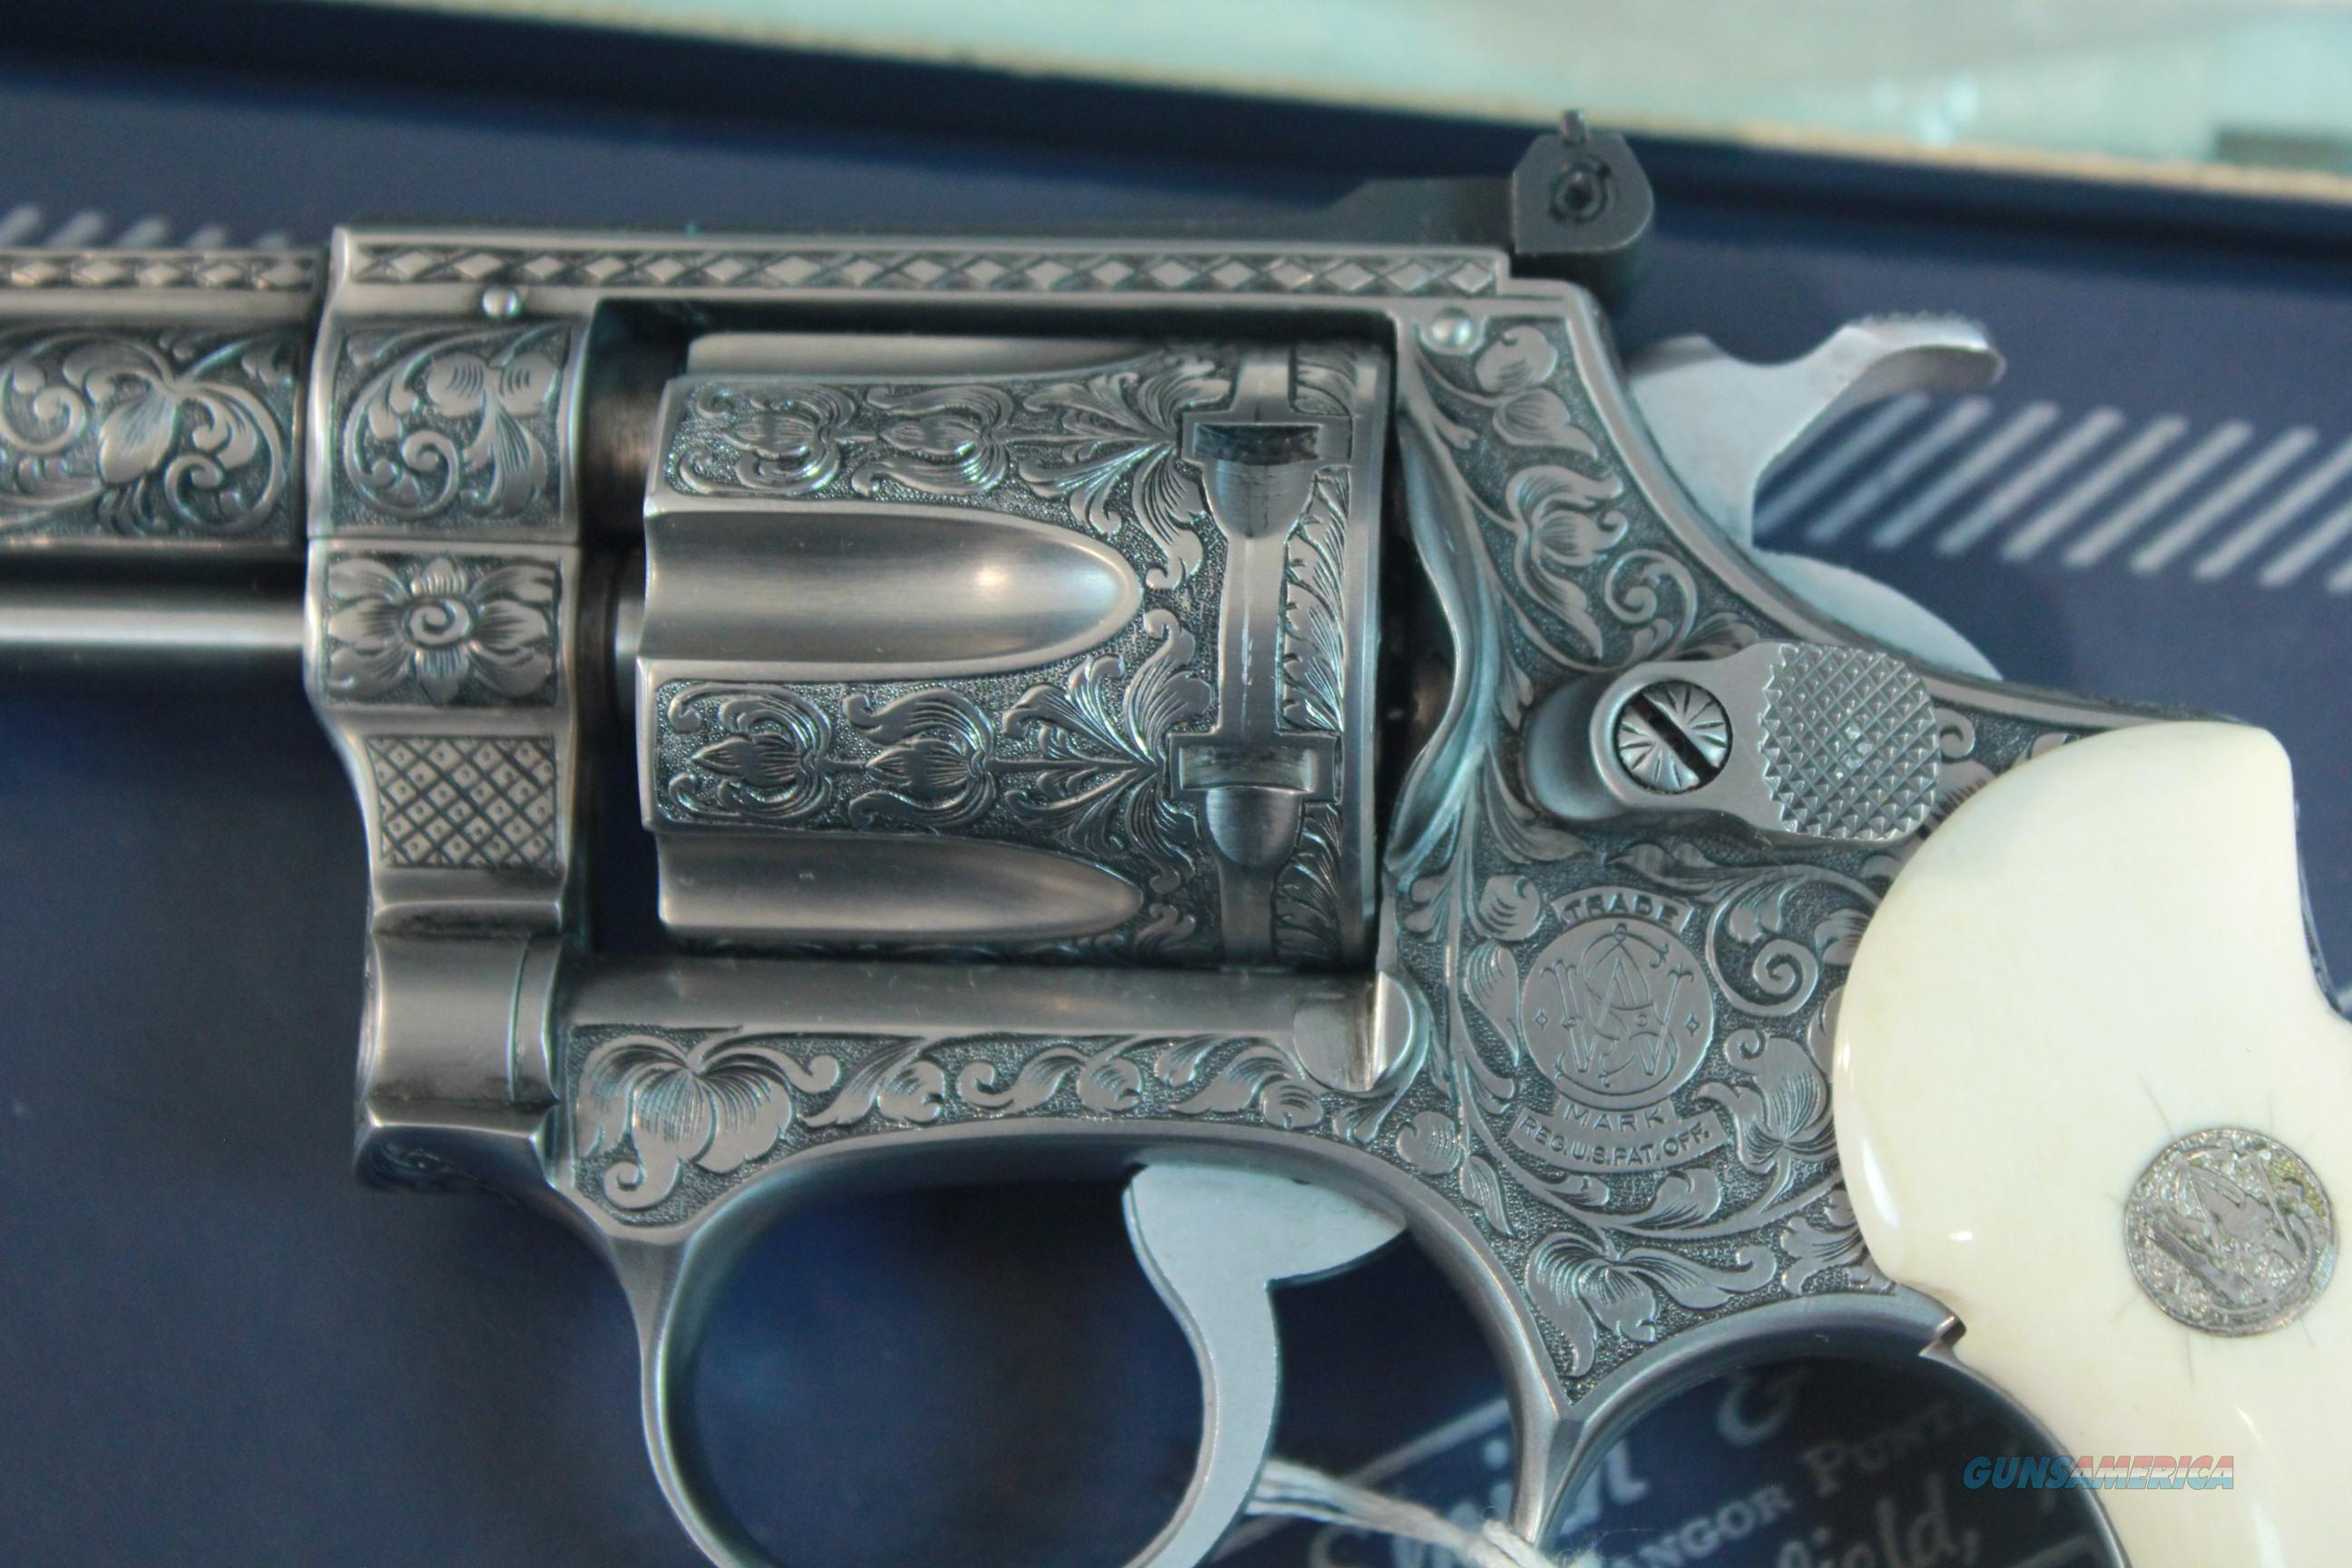 Smith & Wesson Model 63 .22lr Stainless Steel, deep fully engraved, genuine Elephant Ivory Grips with Original Box  Guns > Pistols > Smith & Wesson Revolvers > Pocket Pistols